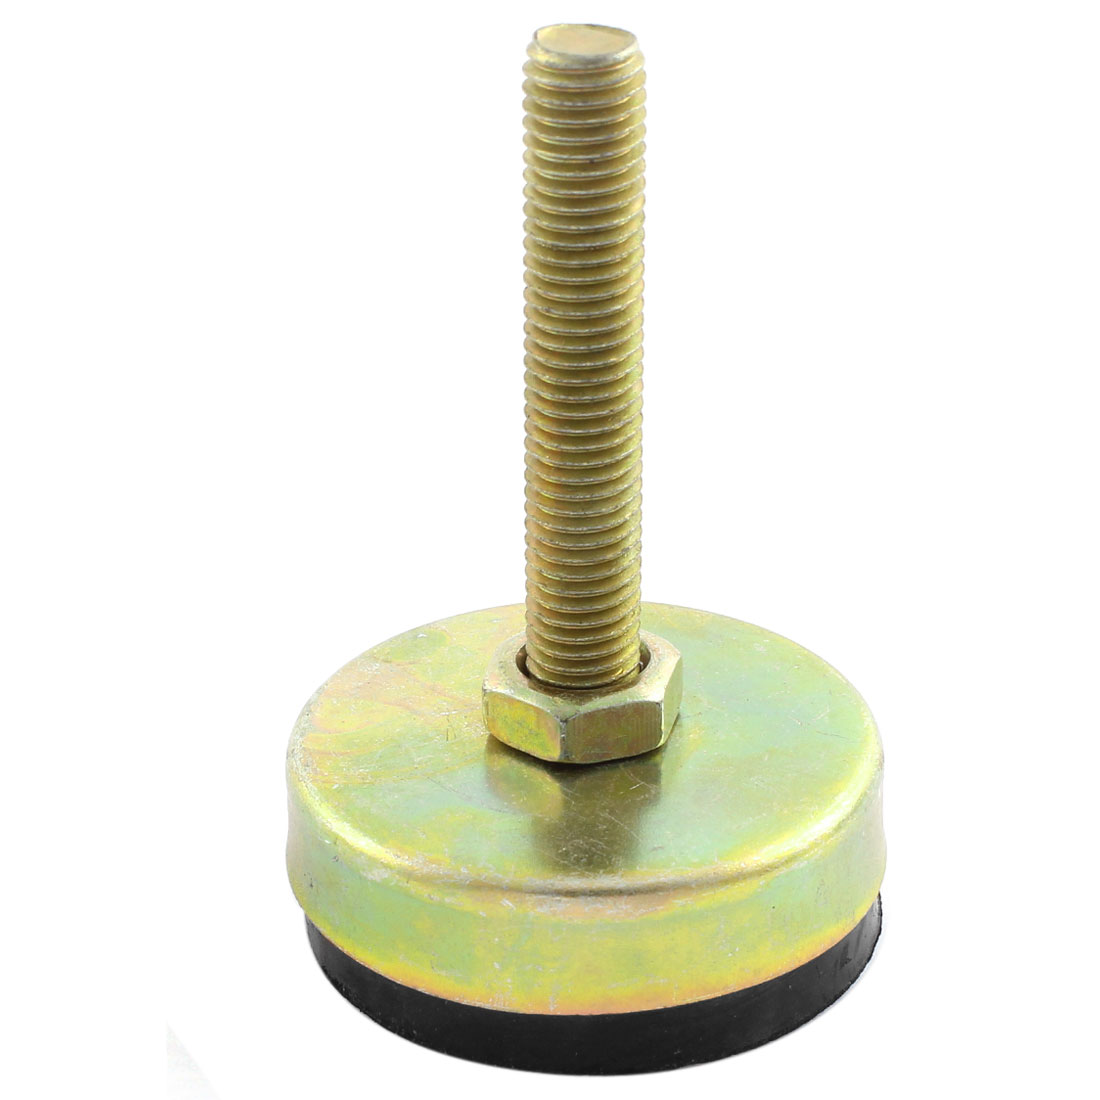 Machine Furniture M12 x 70mm Thread 60mm Base Leveling Foot Mount